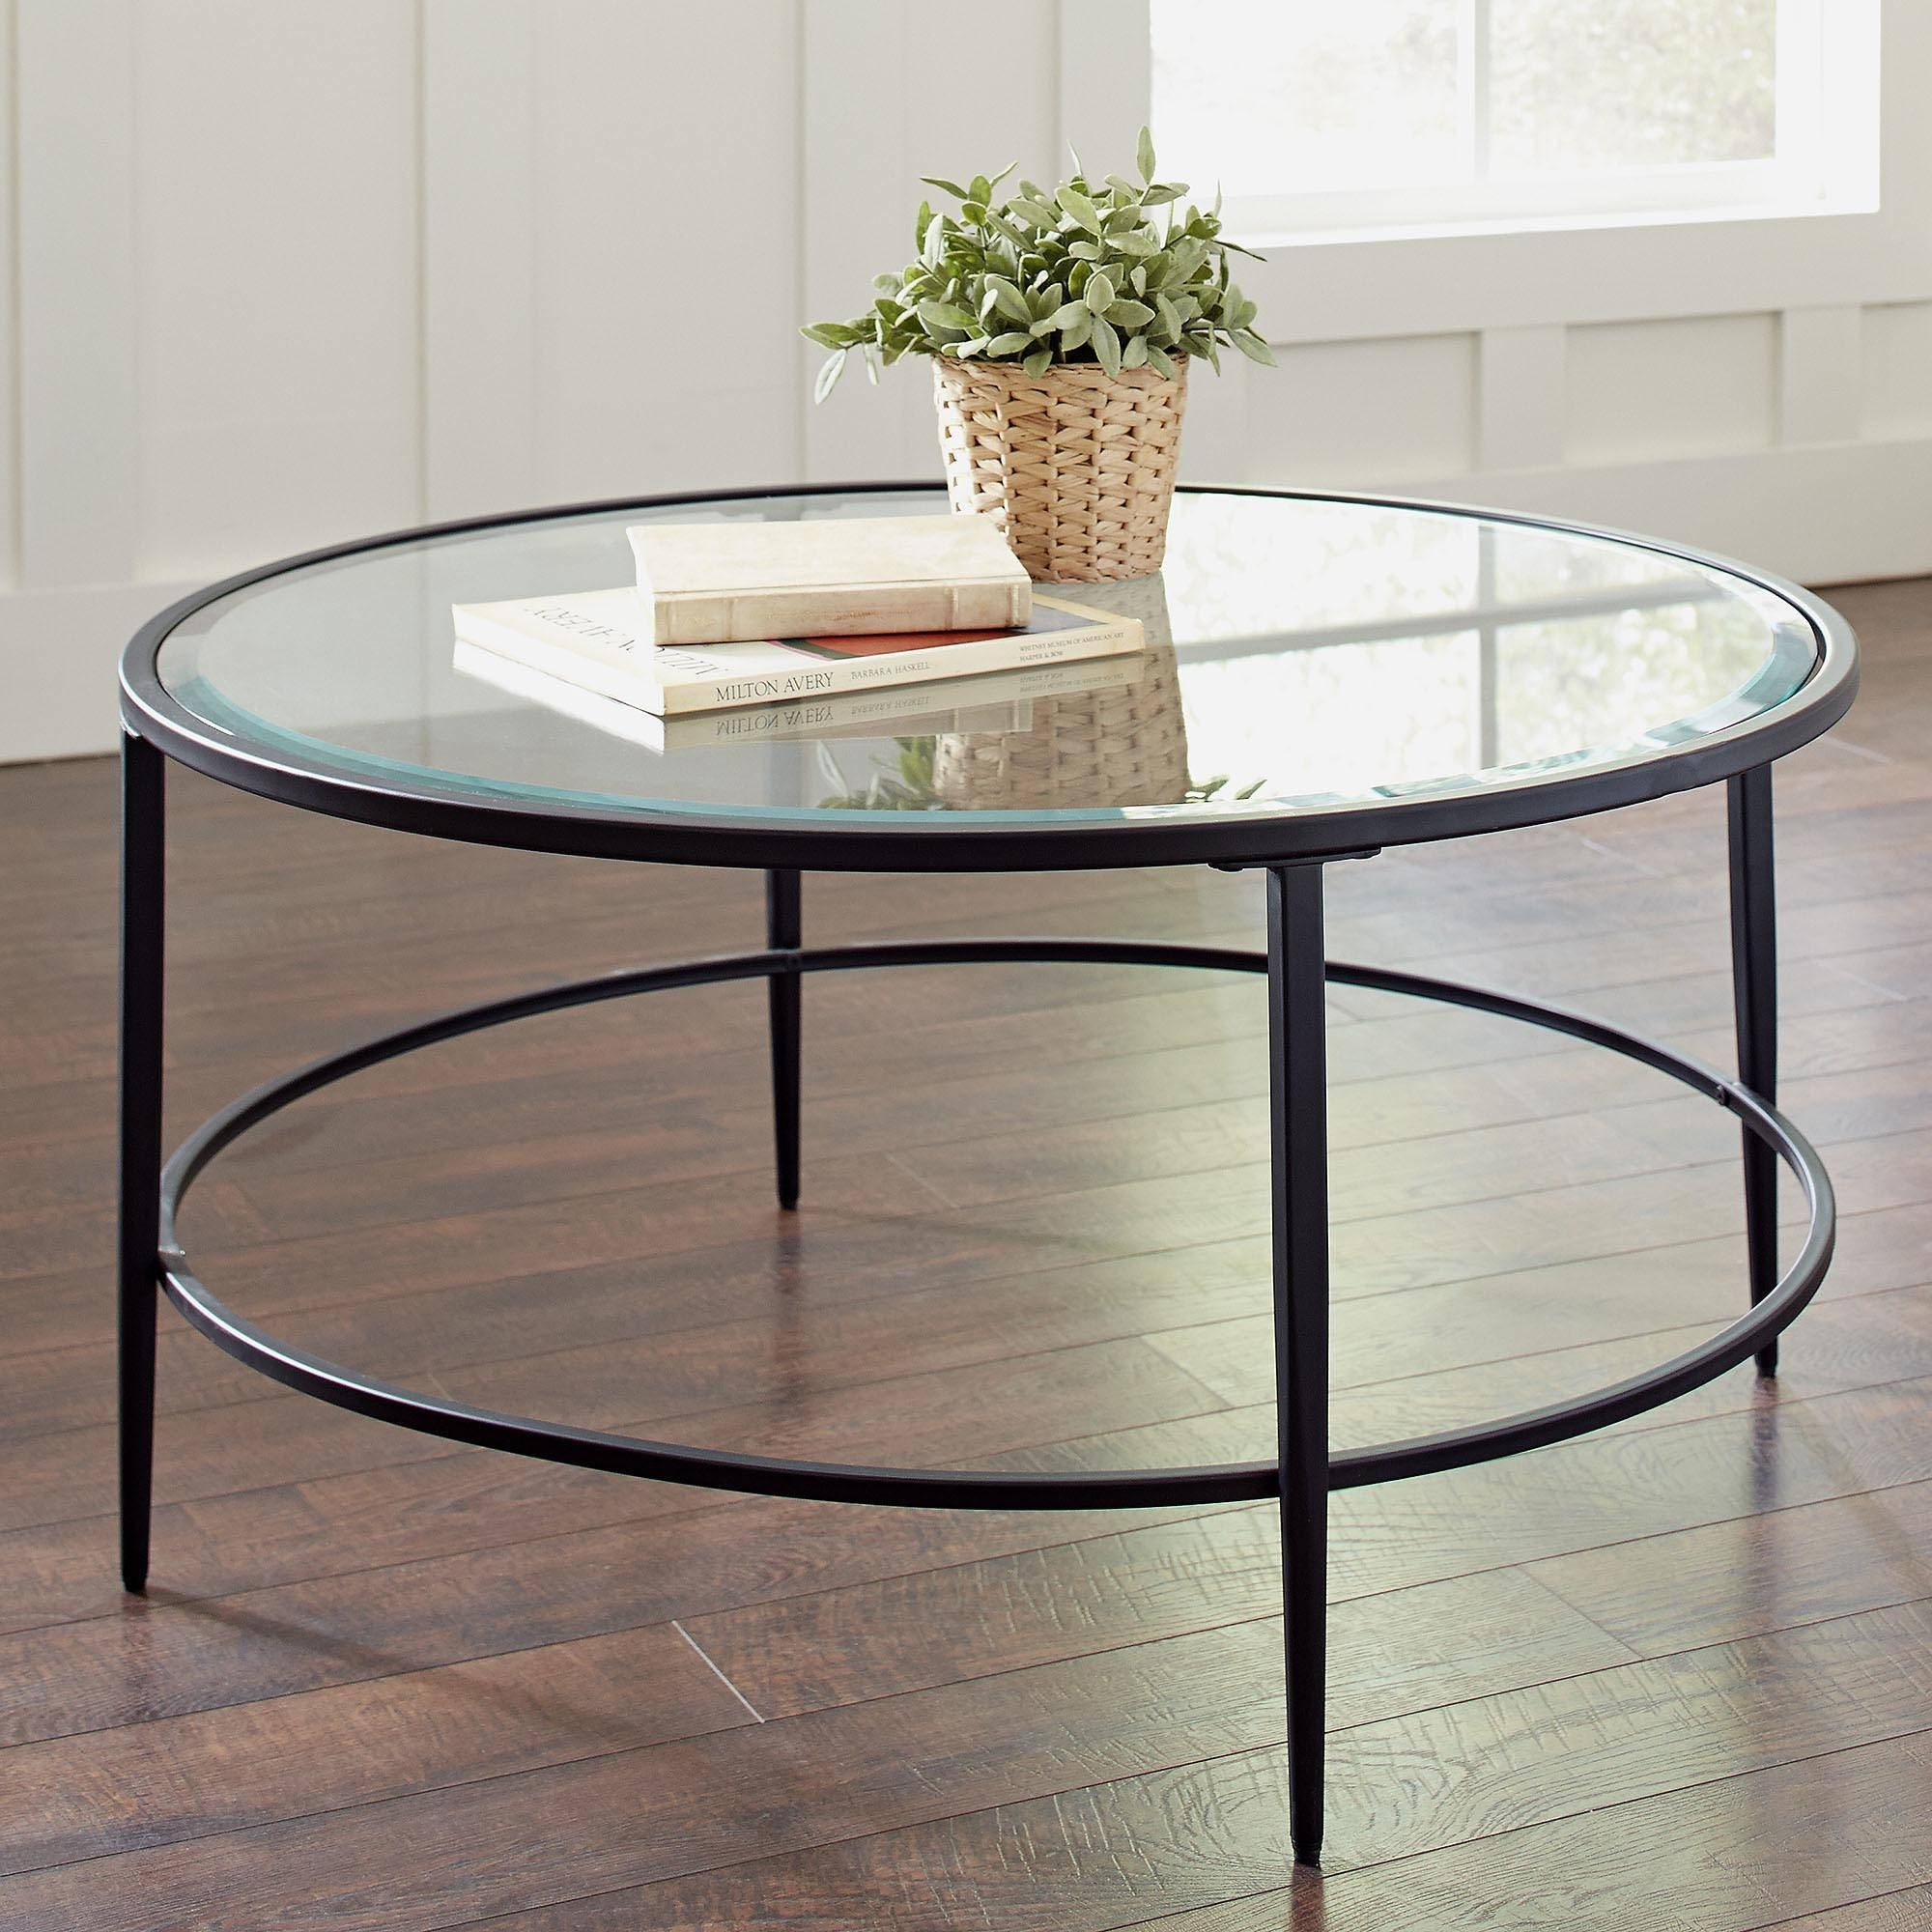 Coffee Table: Enchanting Round Glass Coffee Tables For Sale Cheap inside Wayfair Glass Coffee Tables (Image 17 of 30)